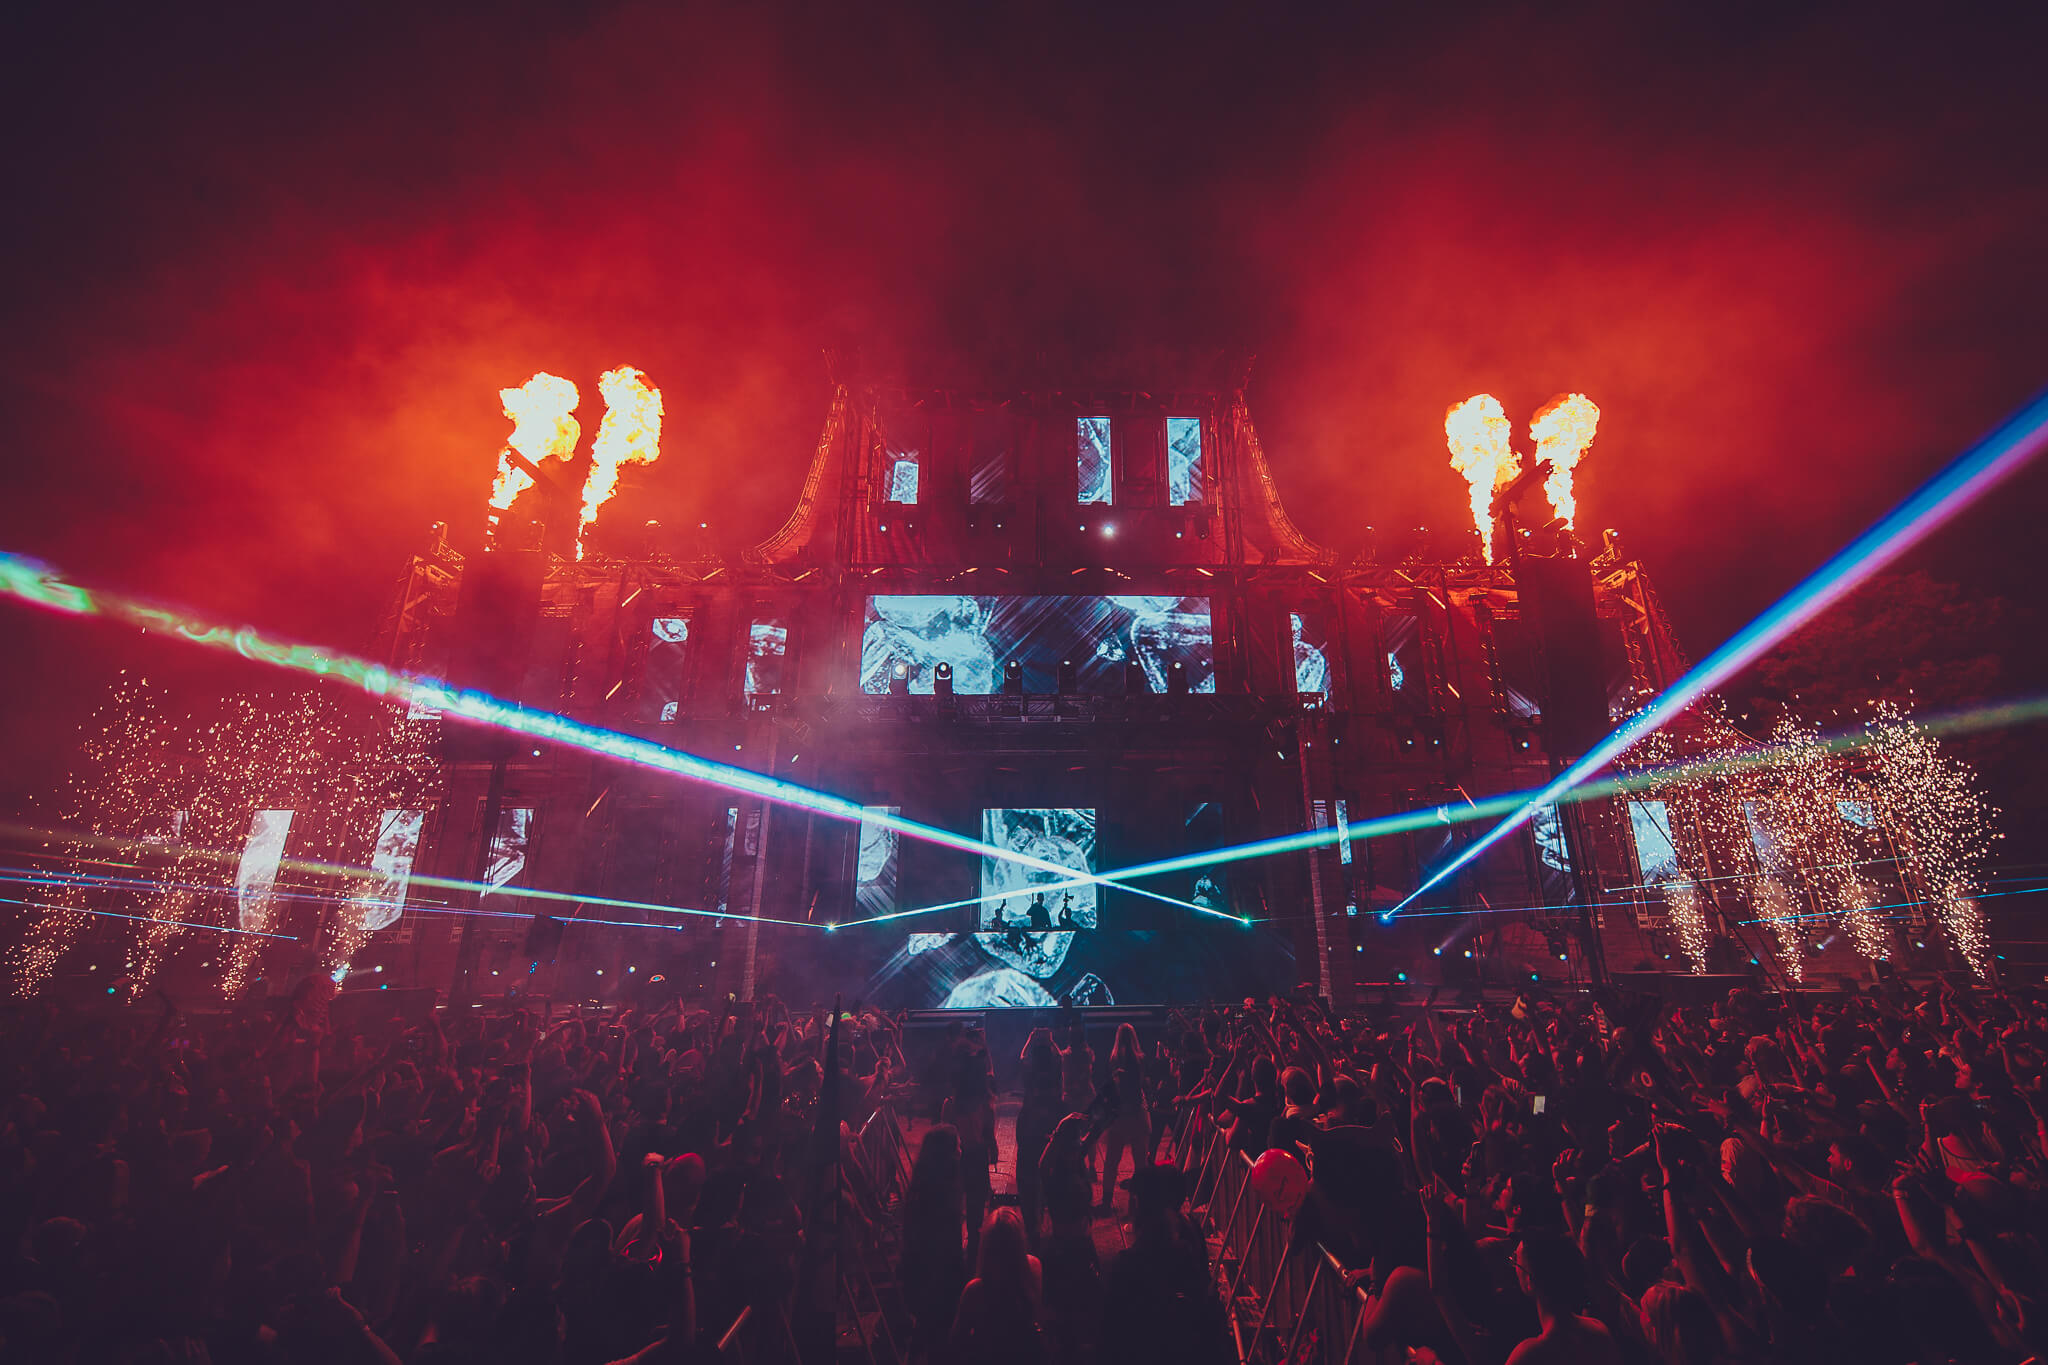 main stage energy with pyro and lasers